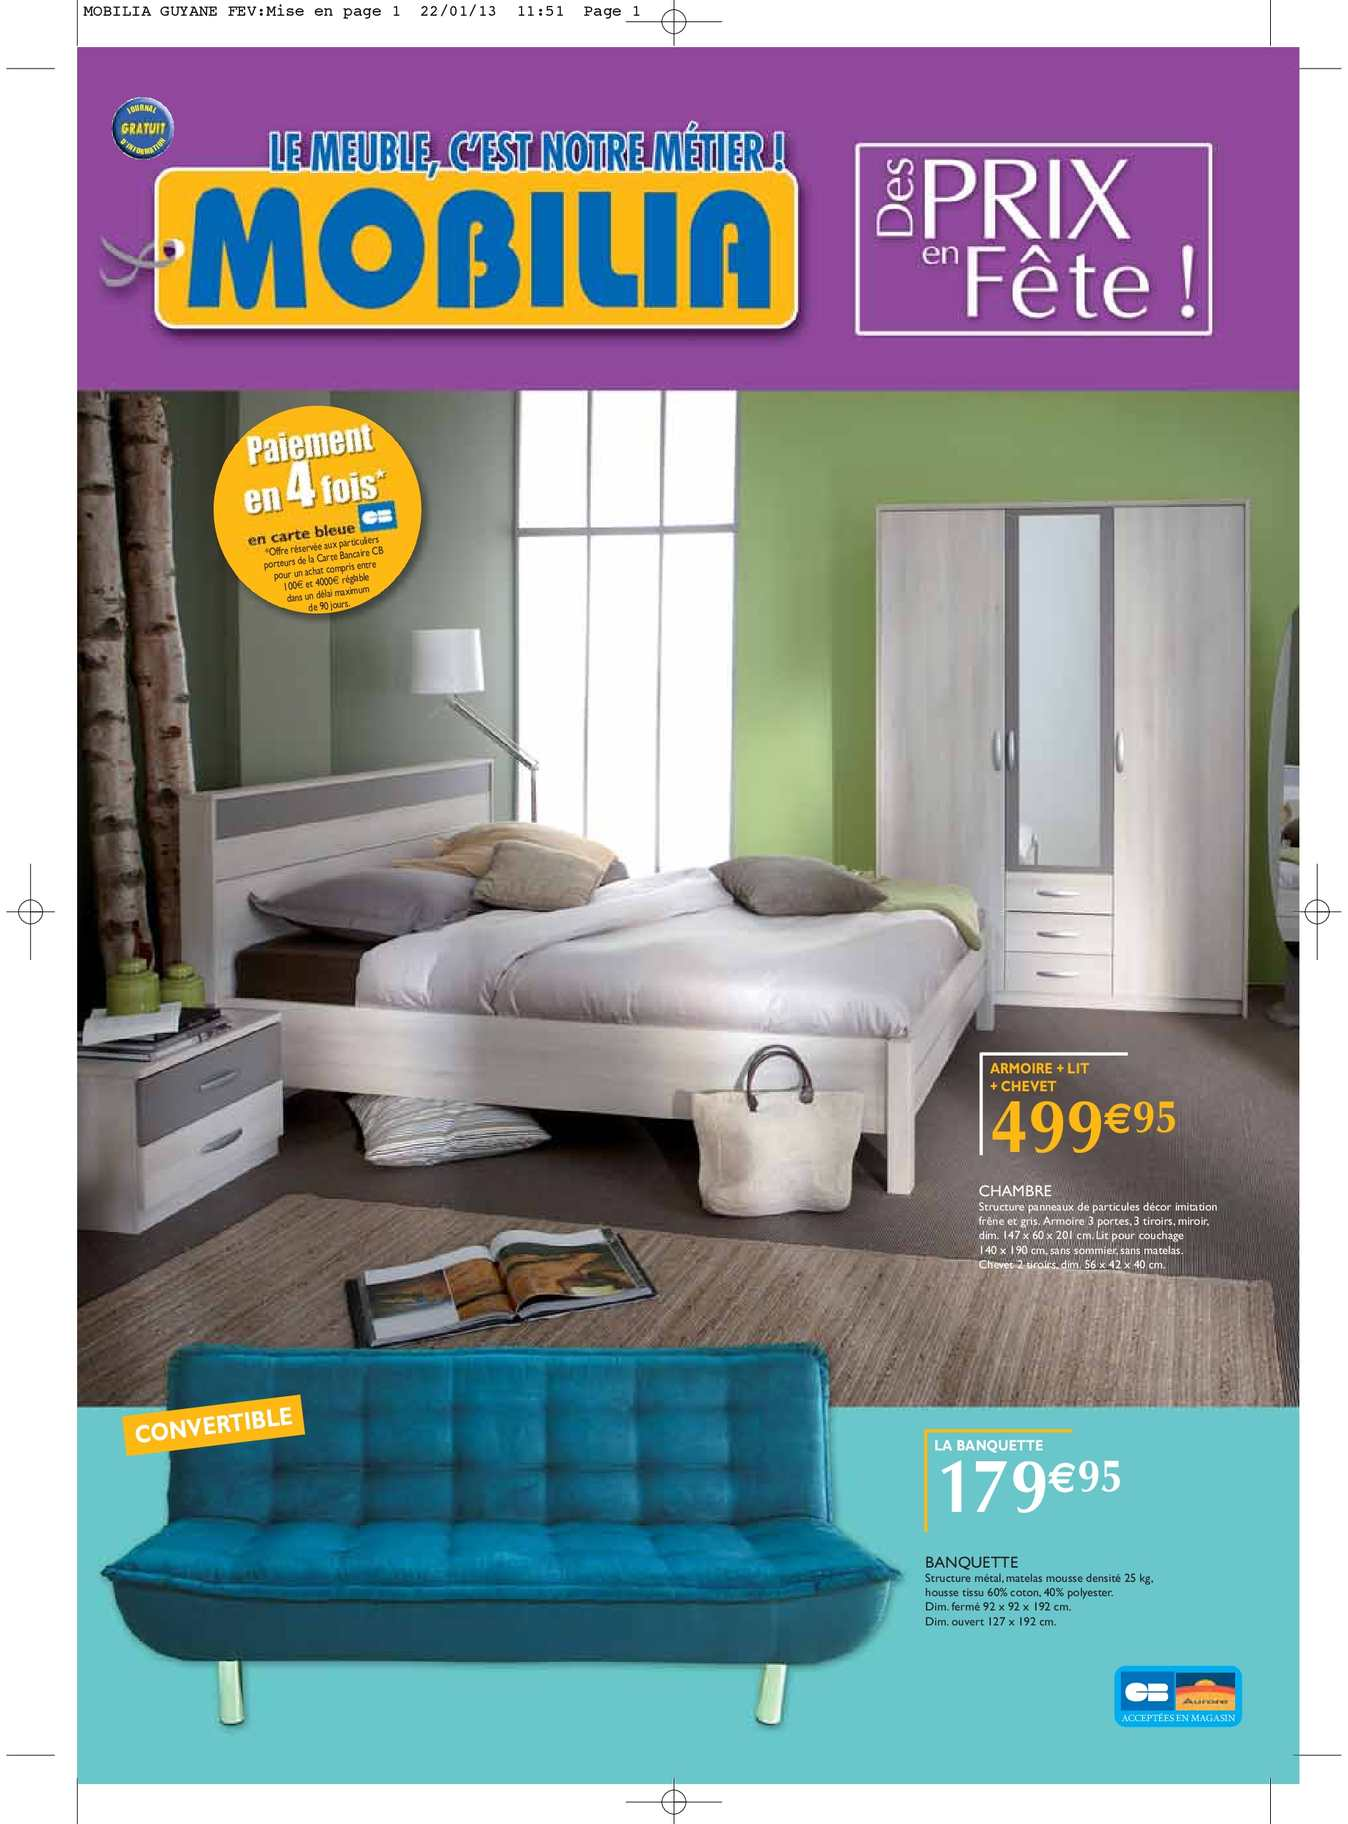 Calam o catalogue mobilia 2013 for Mobilia catalogo